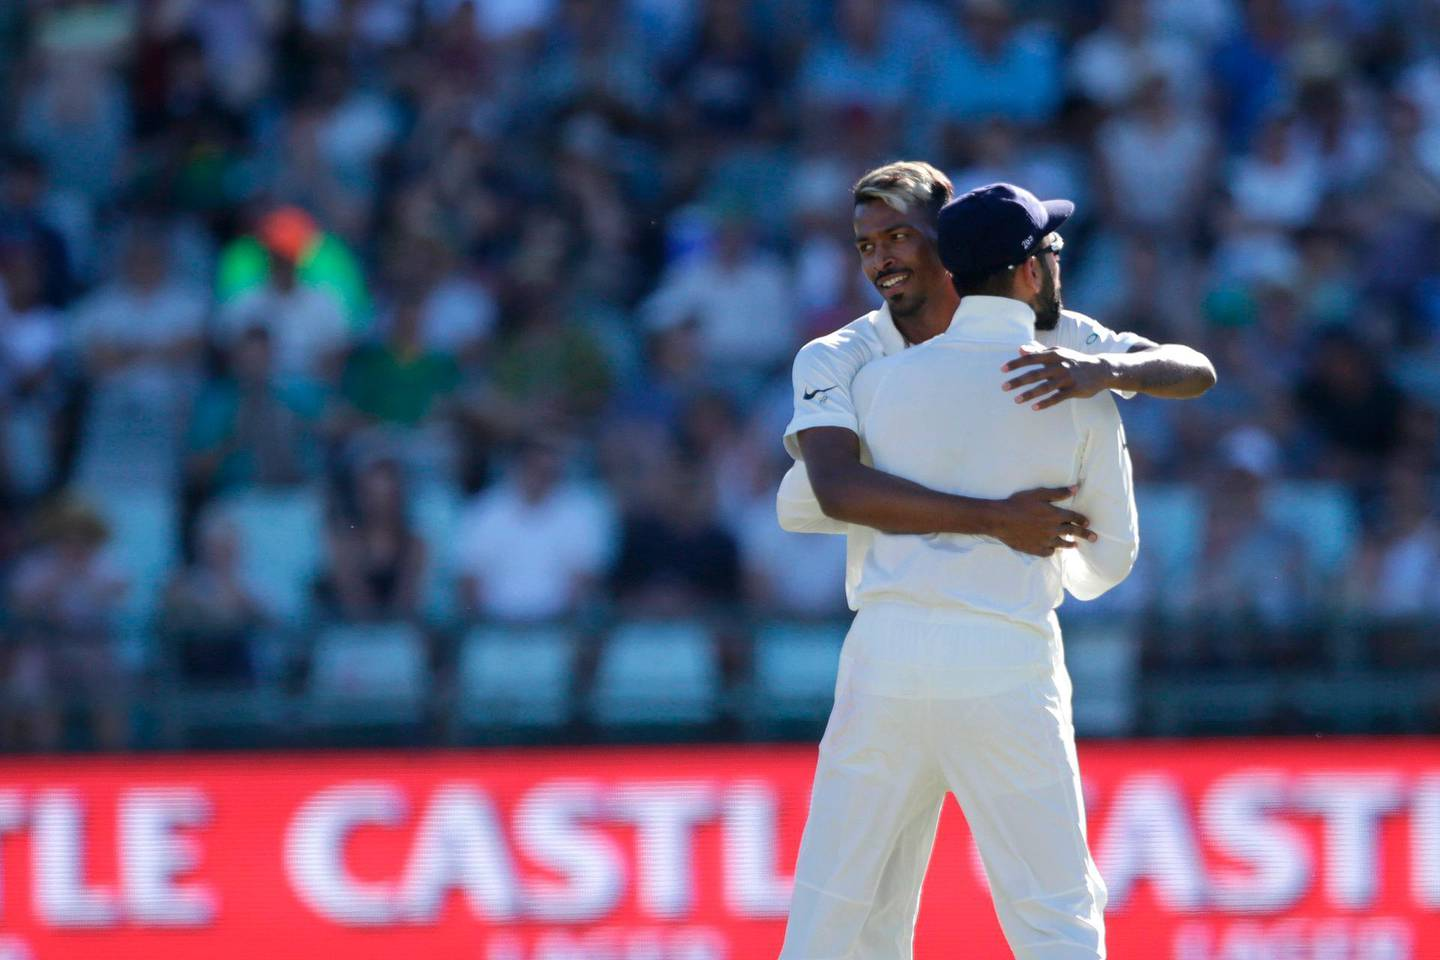 Indian bowler Hardik Pandya (L) celebrates the dismissal of South African batsman Aiden Markram (not in picture) during the second day of the first Test cricket match between South Africa and India at Newlands cricket ground on January 6, 2018 in Cape Town.  / AFP PHOTO / GIANLUIGI GUERCIA